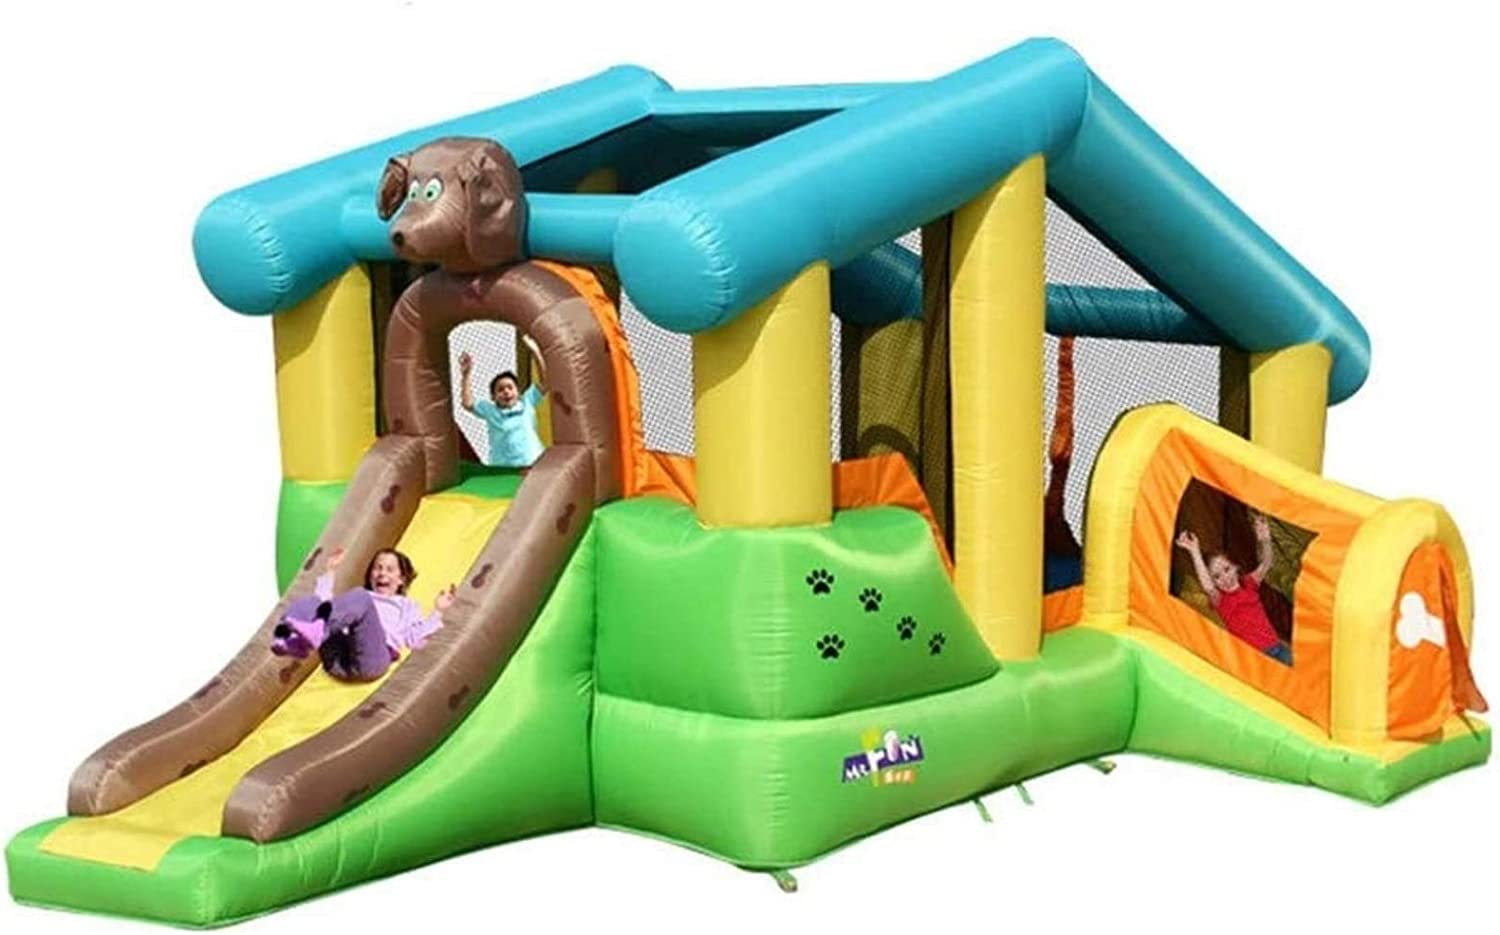 BBJOZ Inflatable Max 62% OFF Bouncers Kids Tampa Mall Inflatab Castle Bouncy Children's